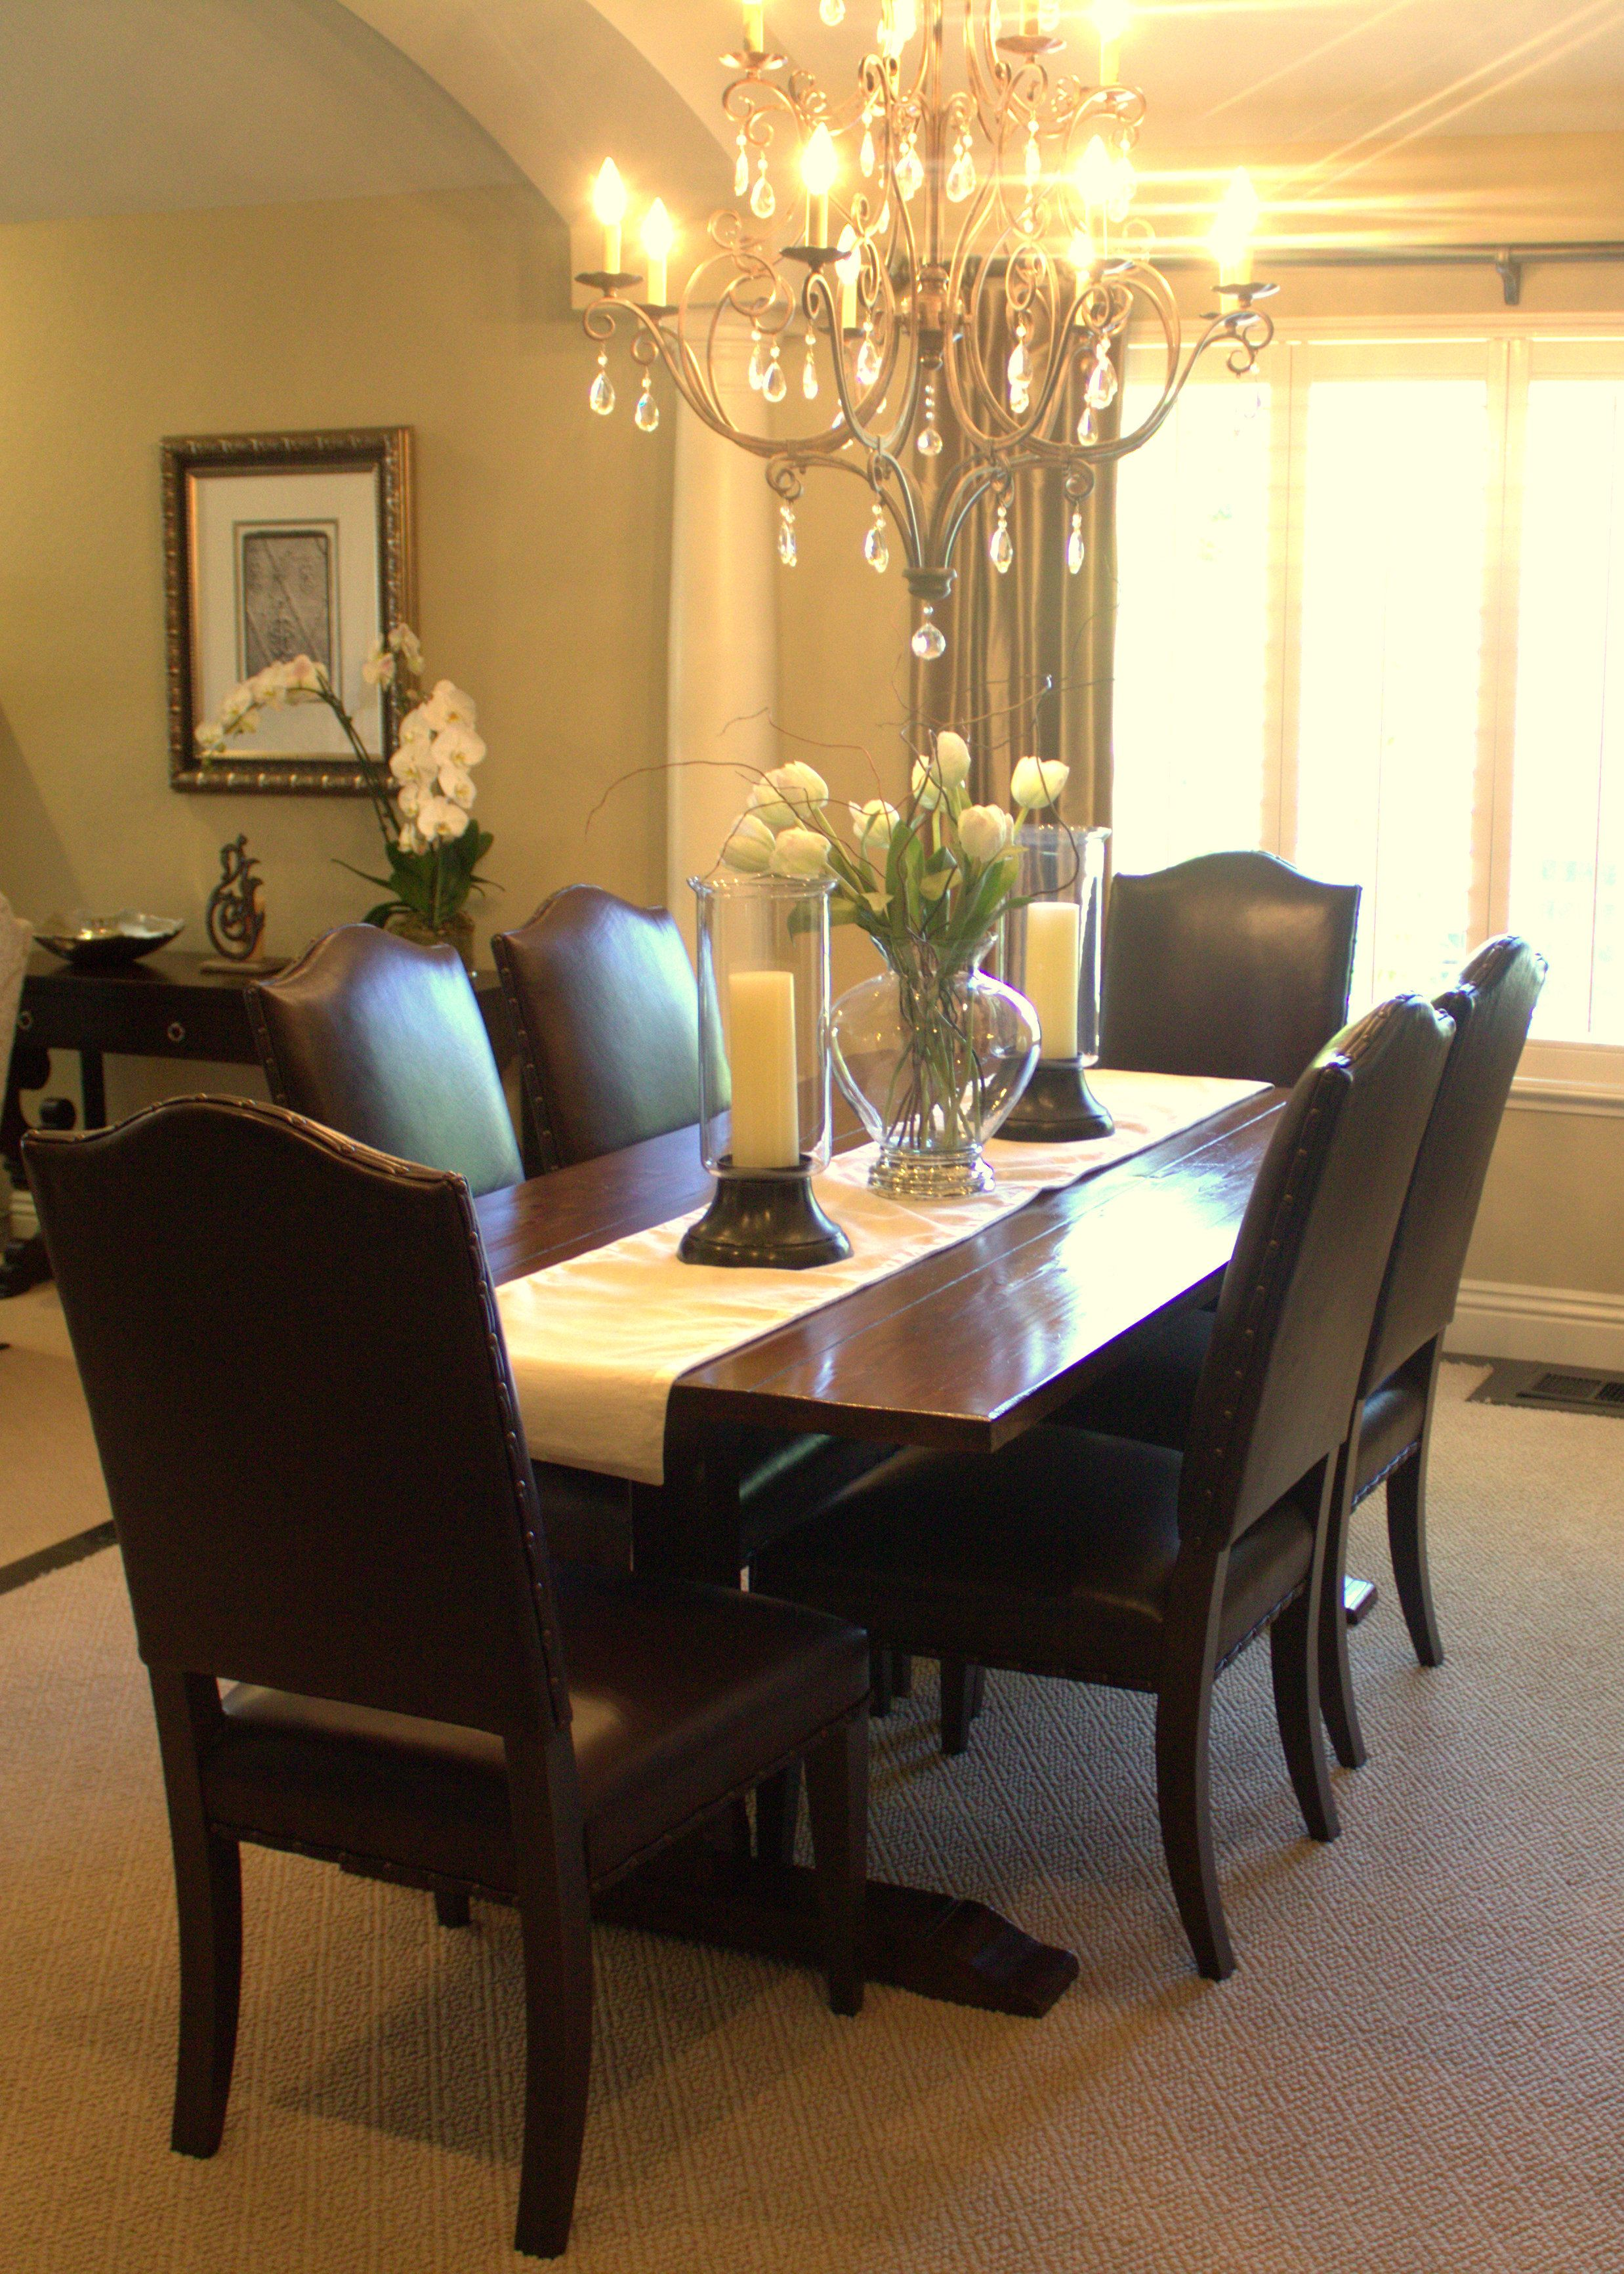 Interior Design And Photography Cindy Kirchubel Dining Room Table Centerpieces Formal Dining Room Table Decor Cheap Dining Room Table